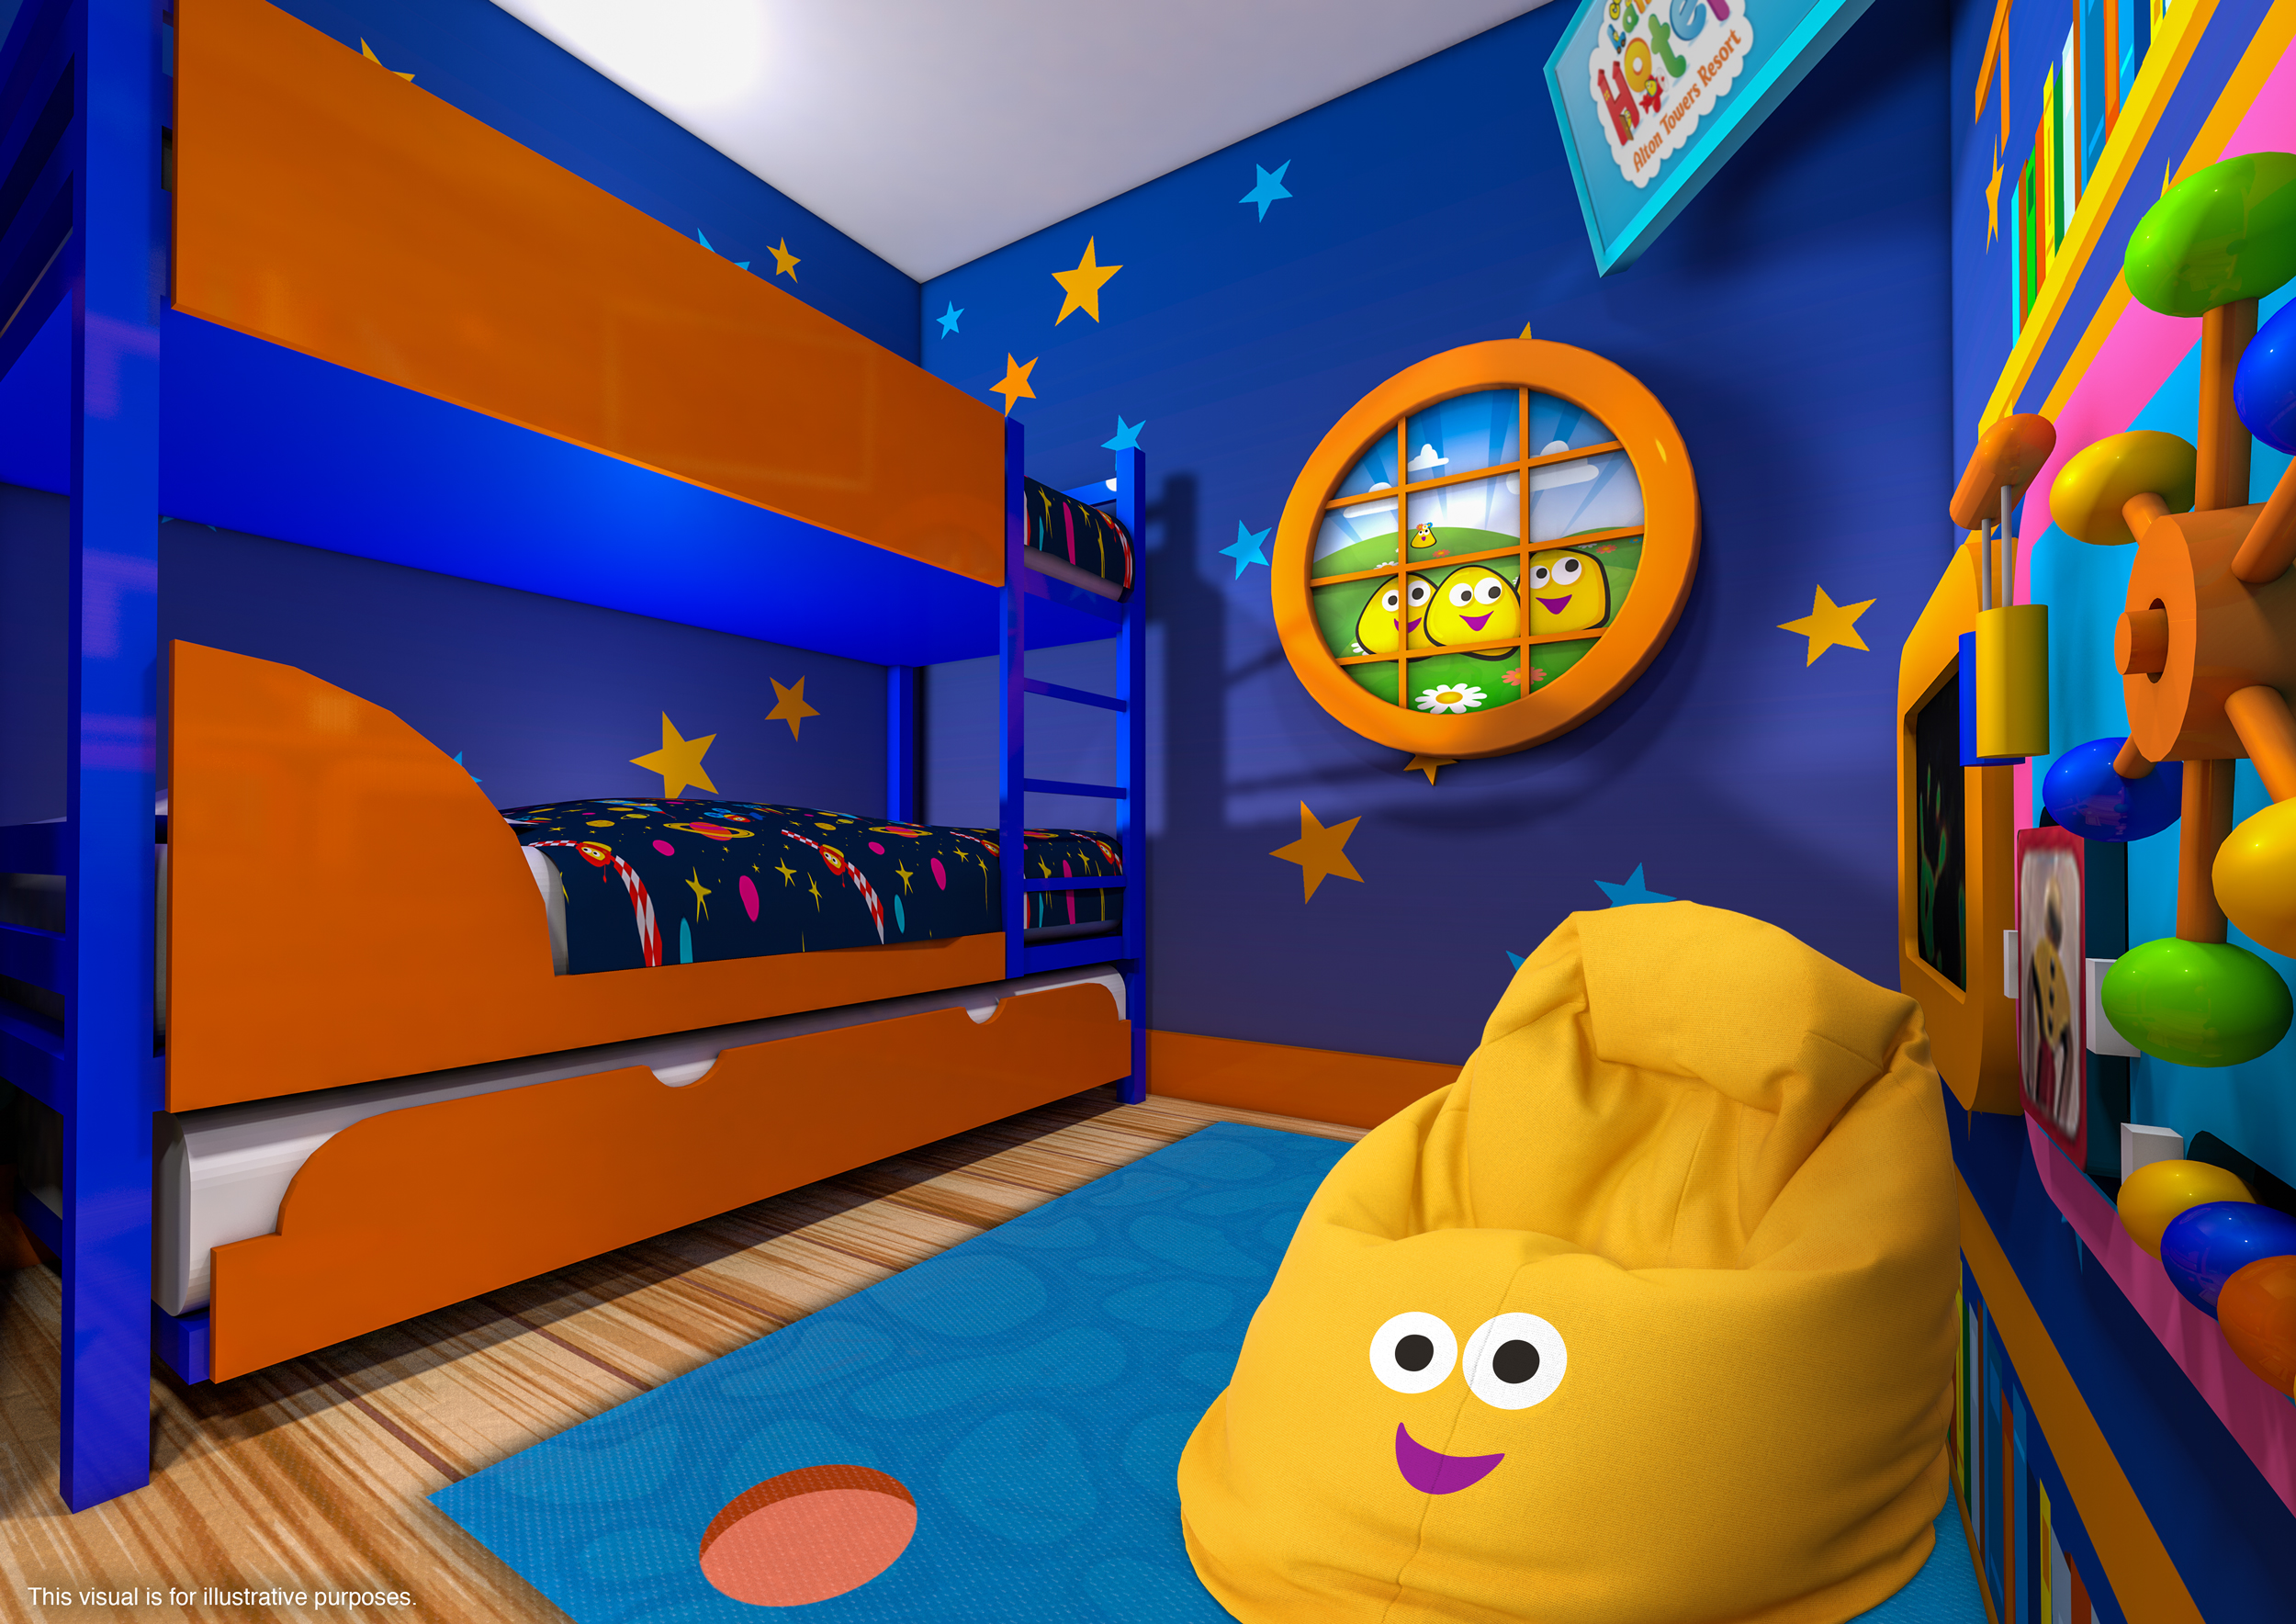 Bugbies kids room